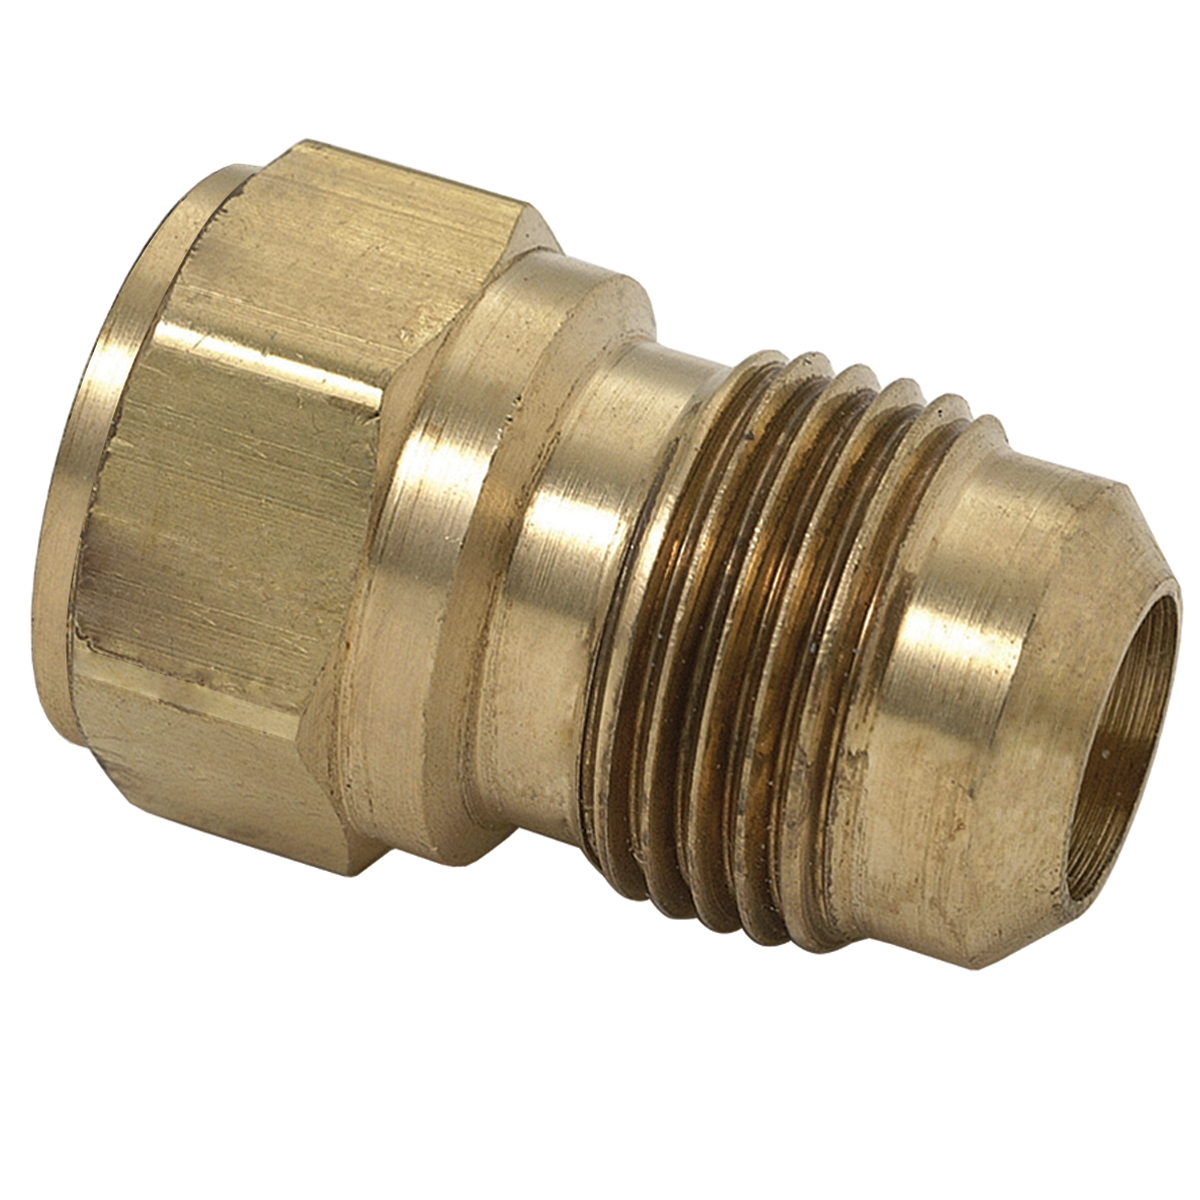 Brass flare fittings st hilaire supply co